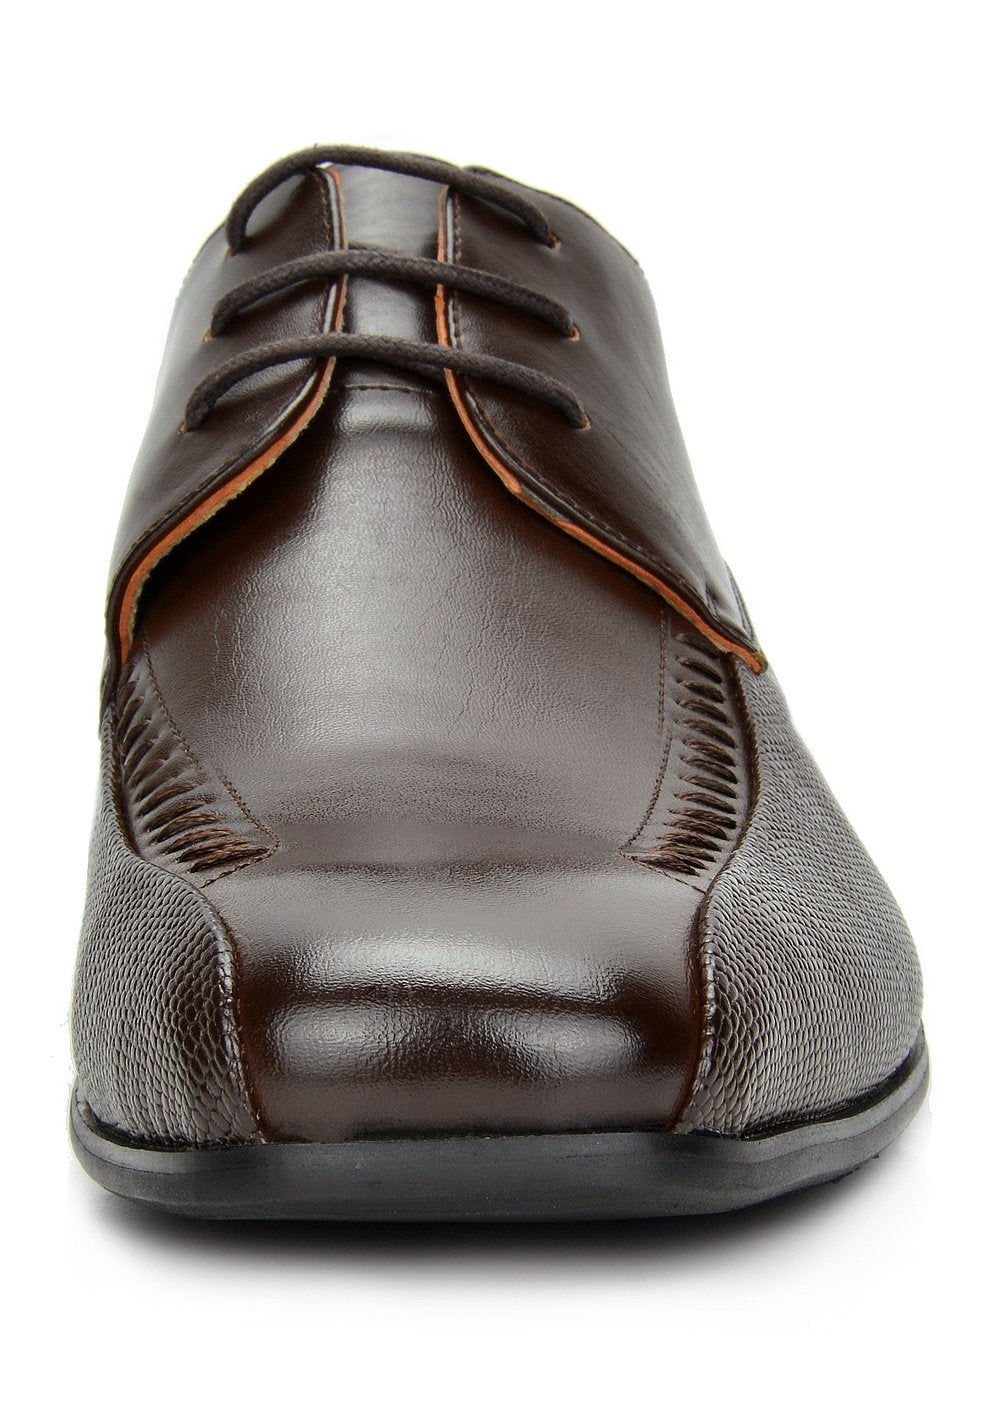 Men's Classic Modern Formal Oxfords Lace Up Leather Lined Snipe Toe- Dark Brown